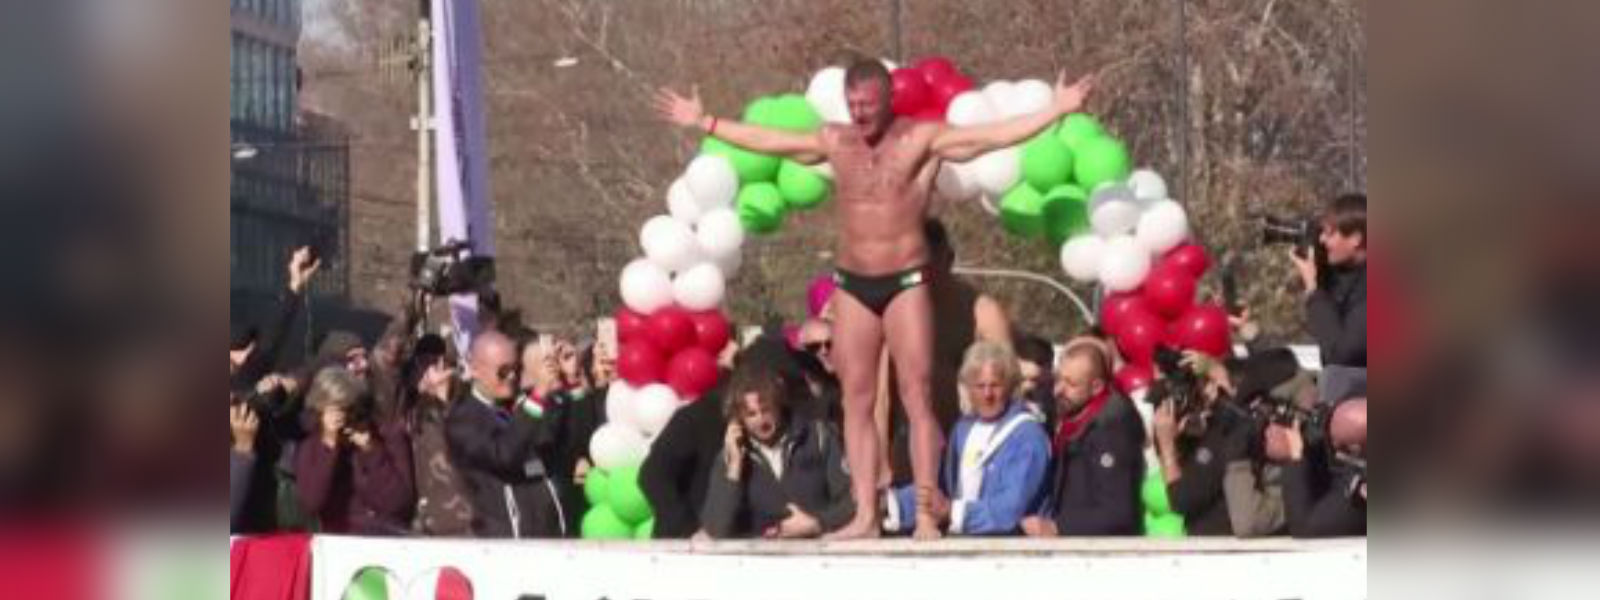 Italians dive into the icy waters of the Tiber River to celebrate the arrival of 2020